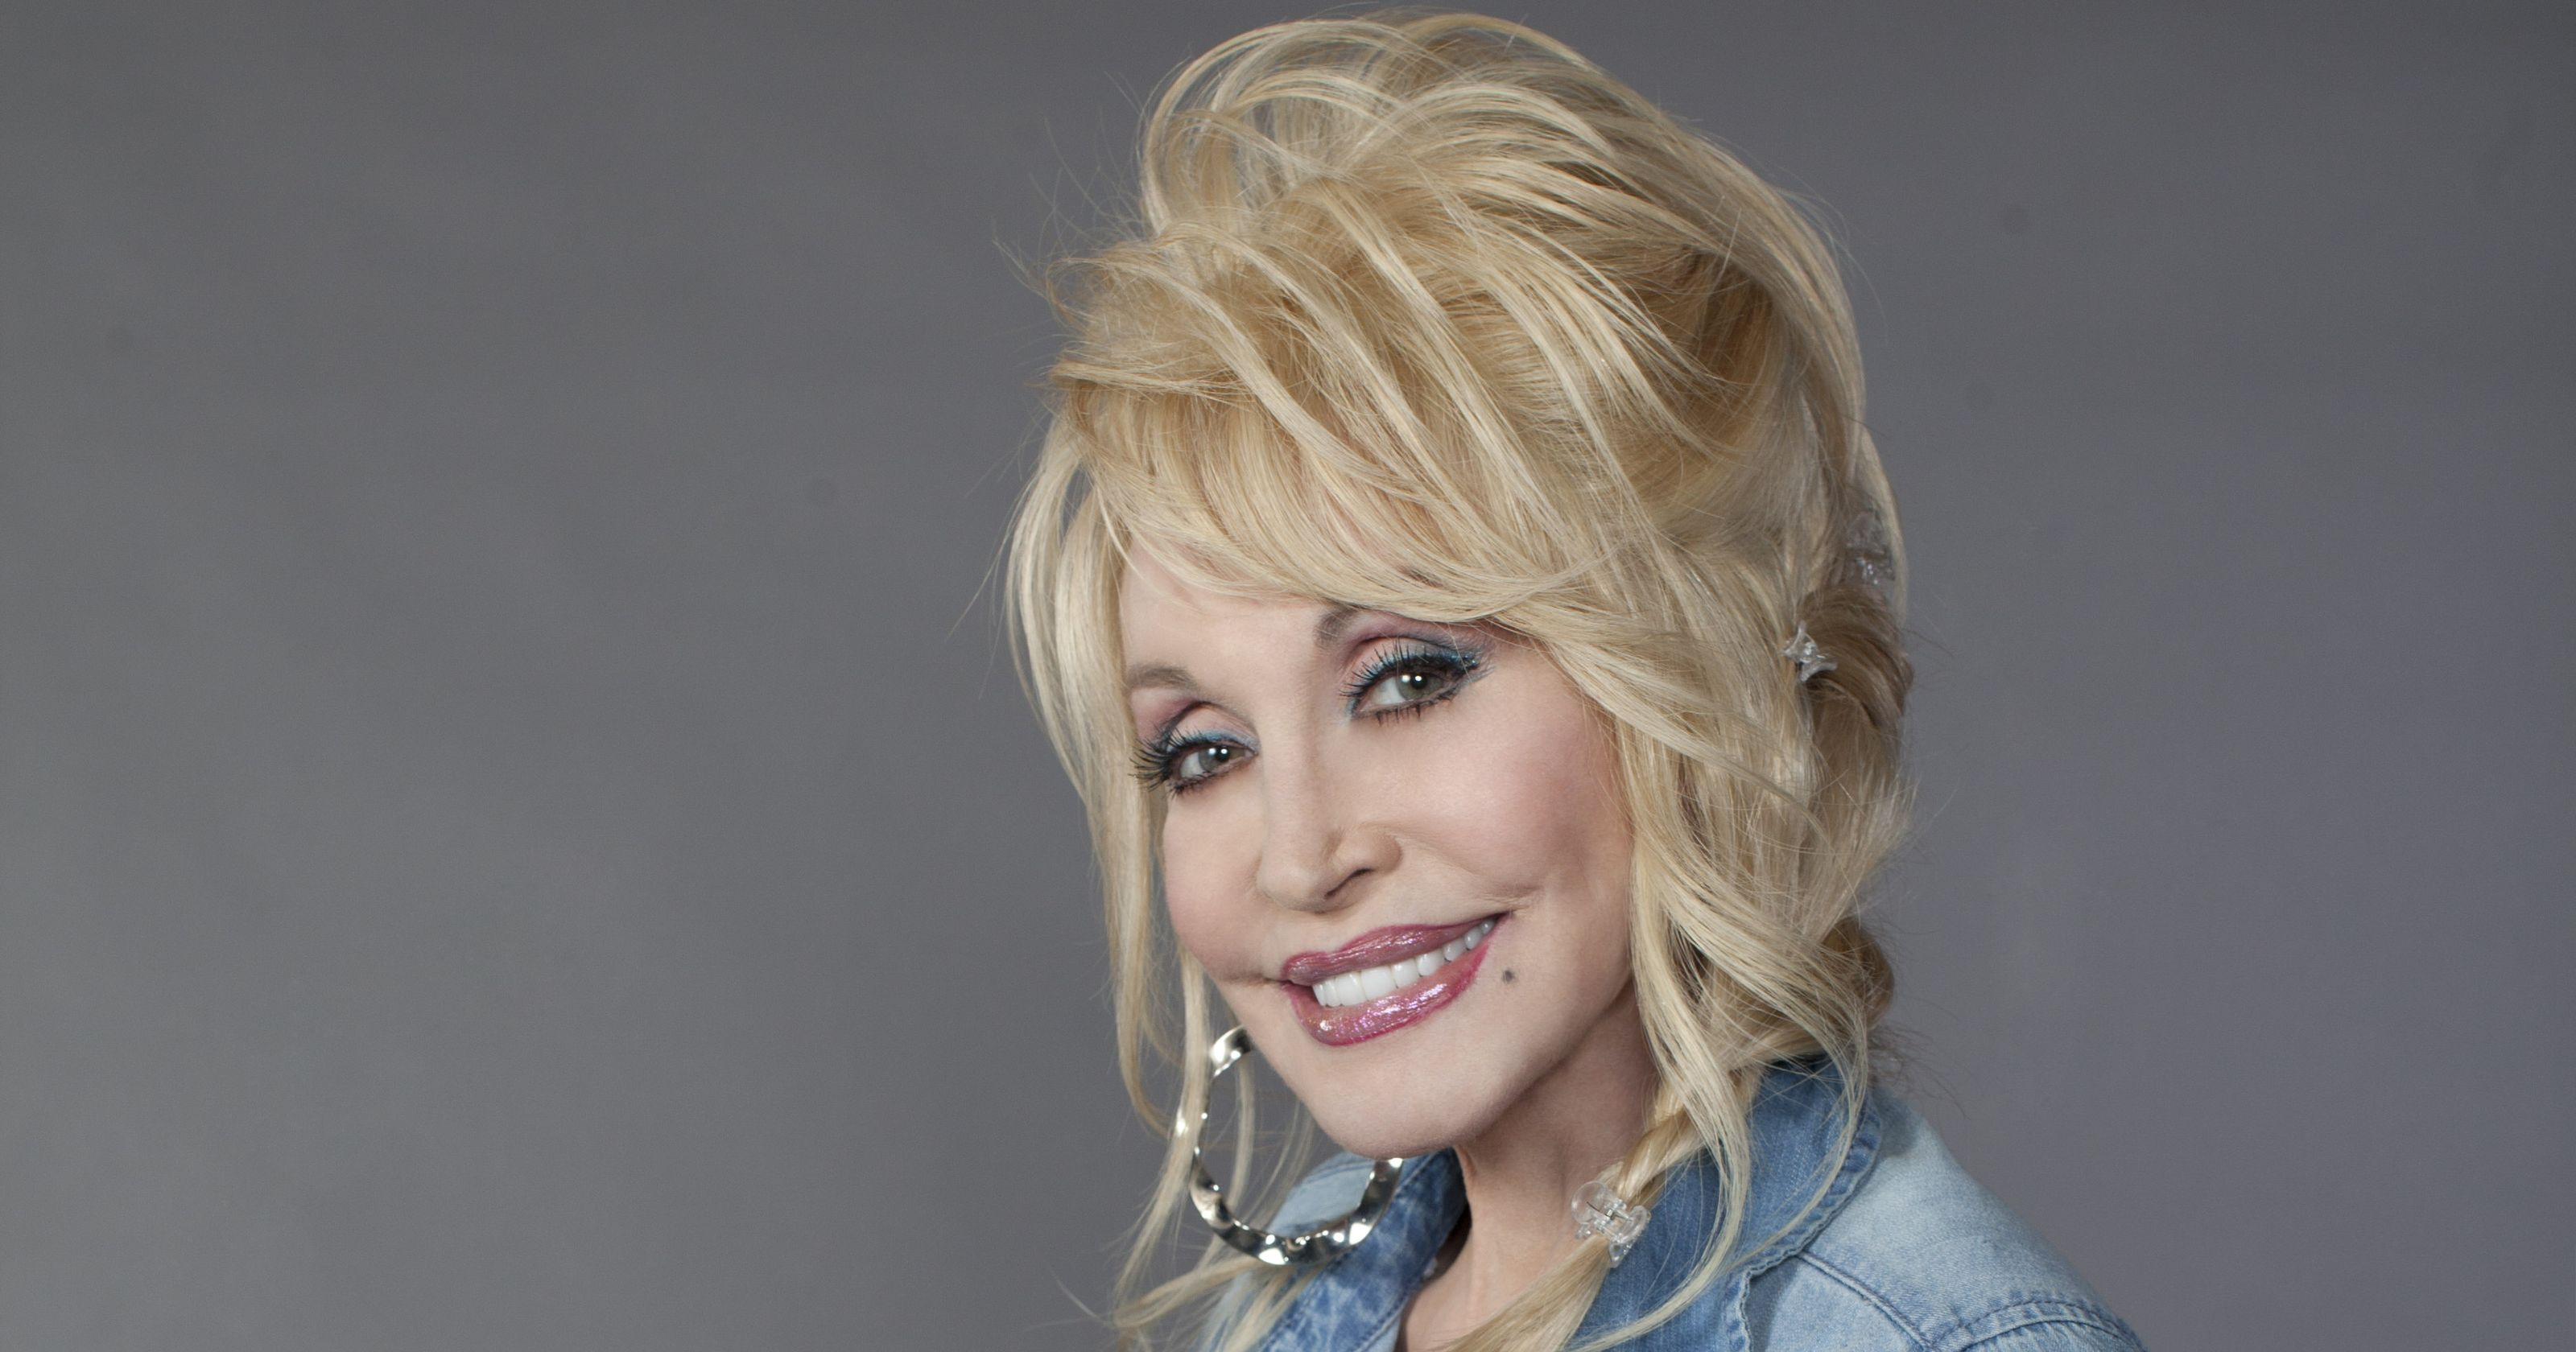 The 2016 ACM Awards will be a big night for Dolly Parton.